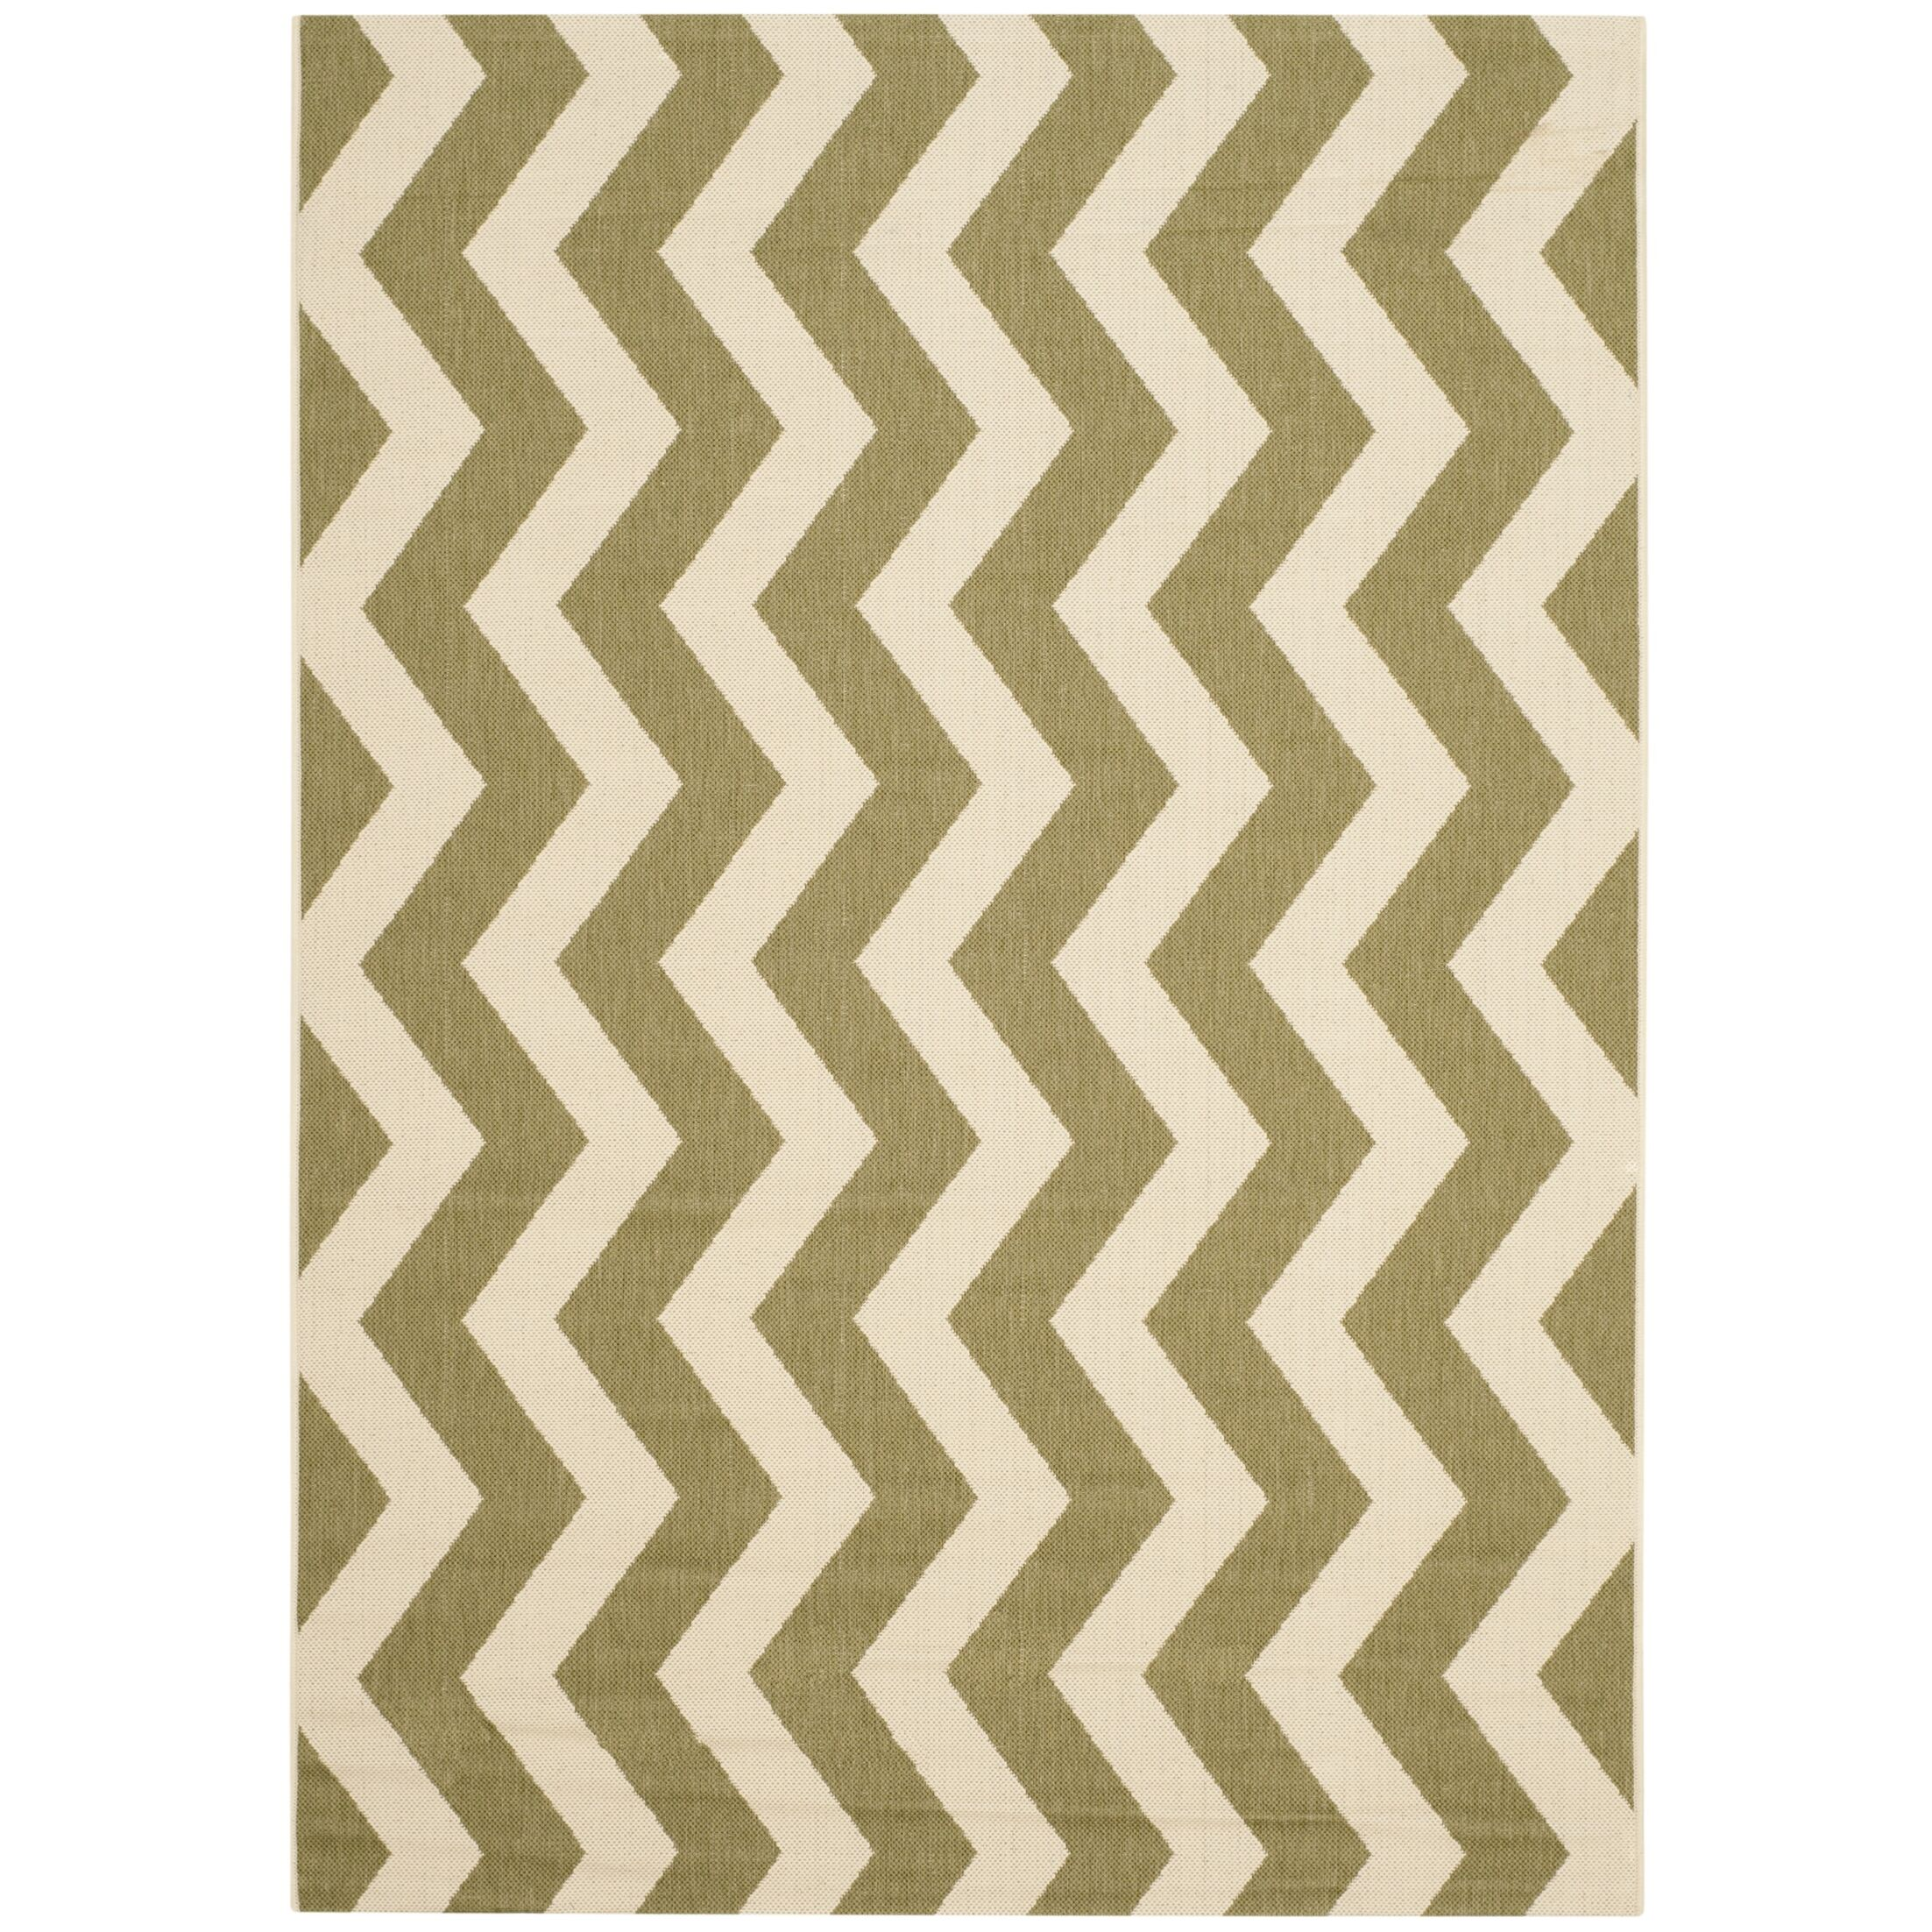 Jefferson Place Green/Beige Indoor/Outdoor Rug Rug Size: Rectangle 5'3